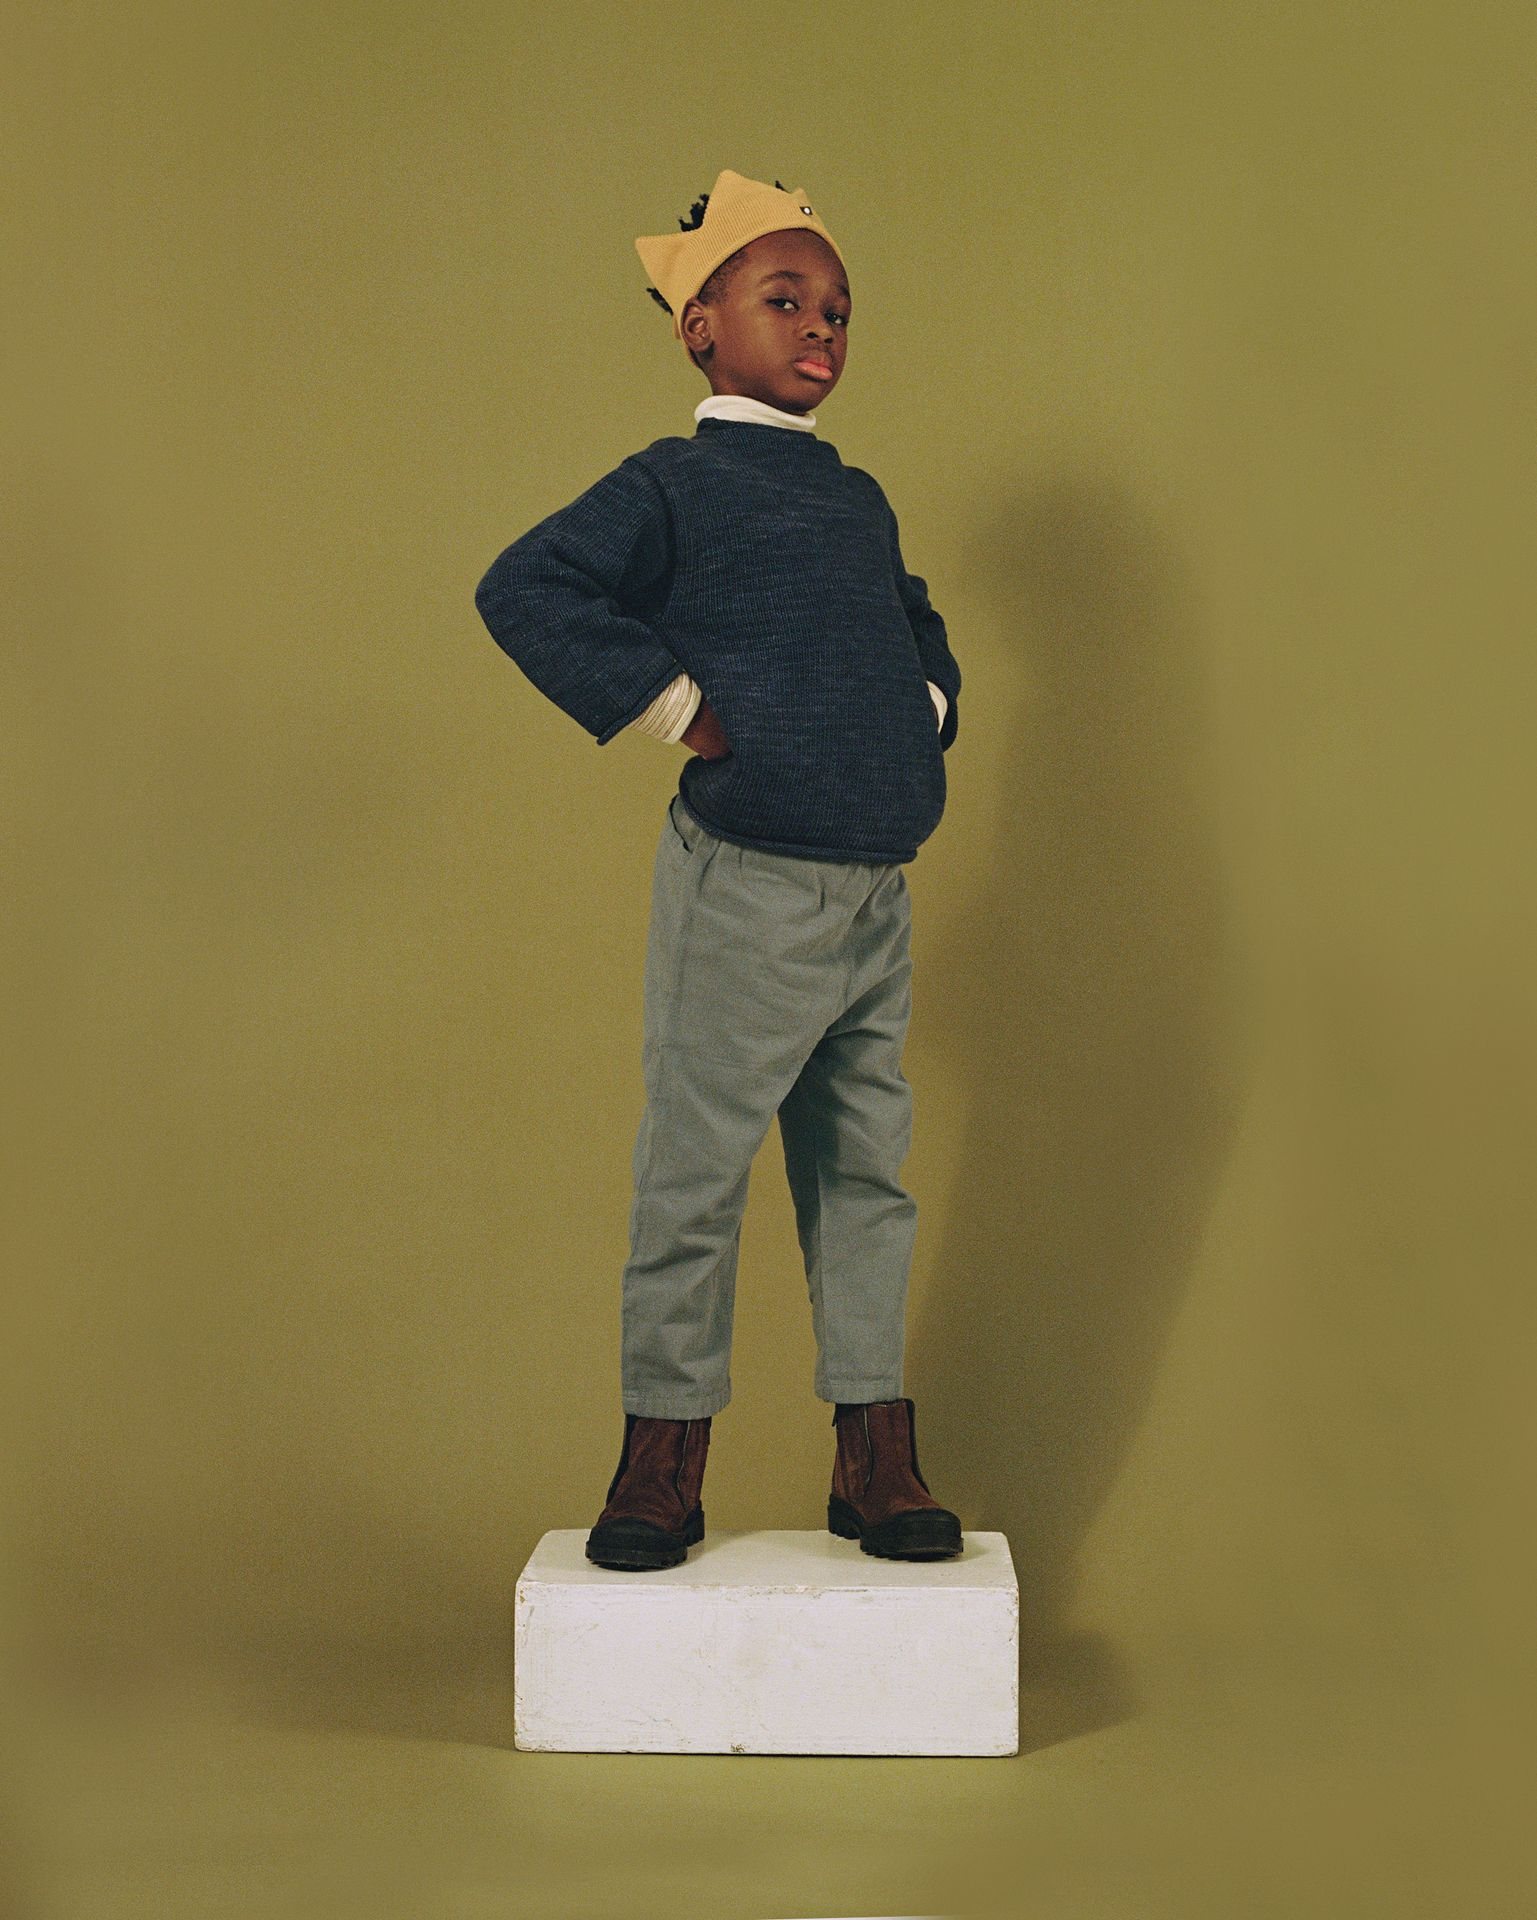 Little bipoc boy proudly standing on white apple boxe. He is wearing a fabric crown.